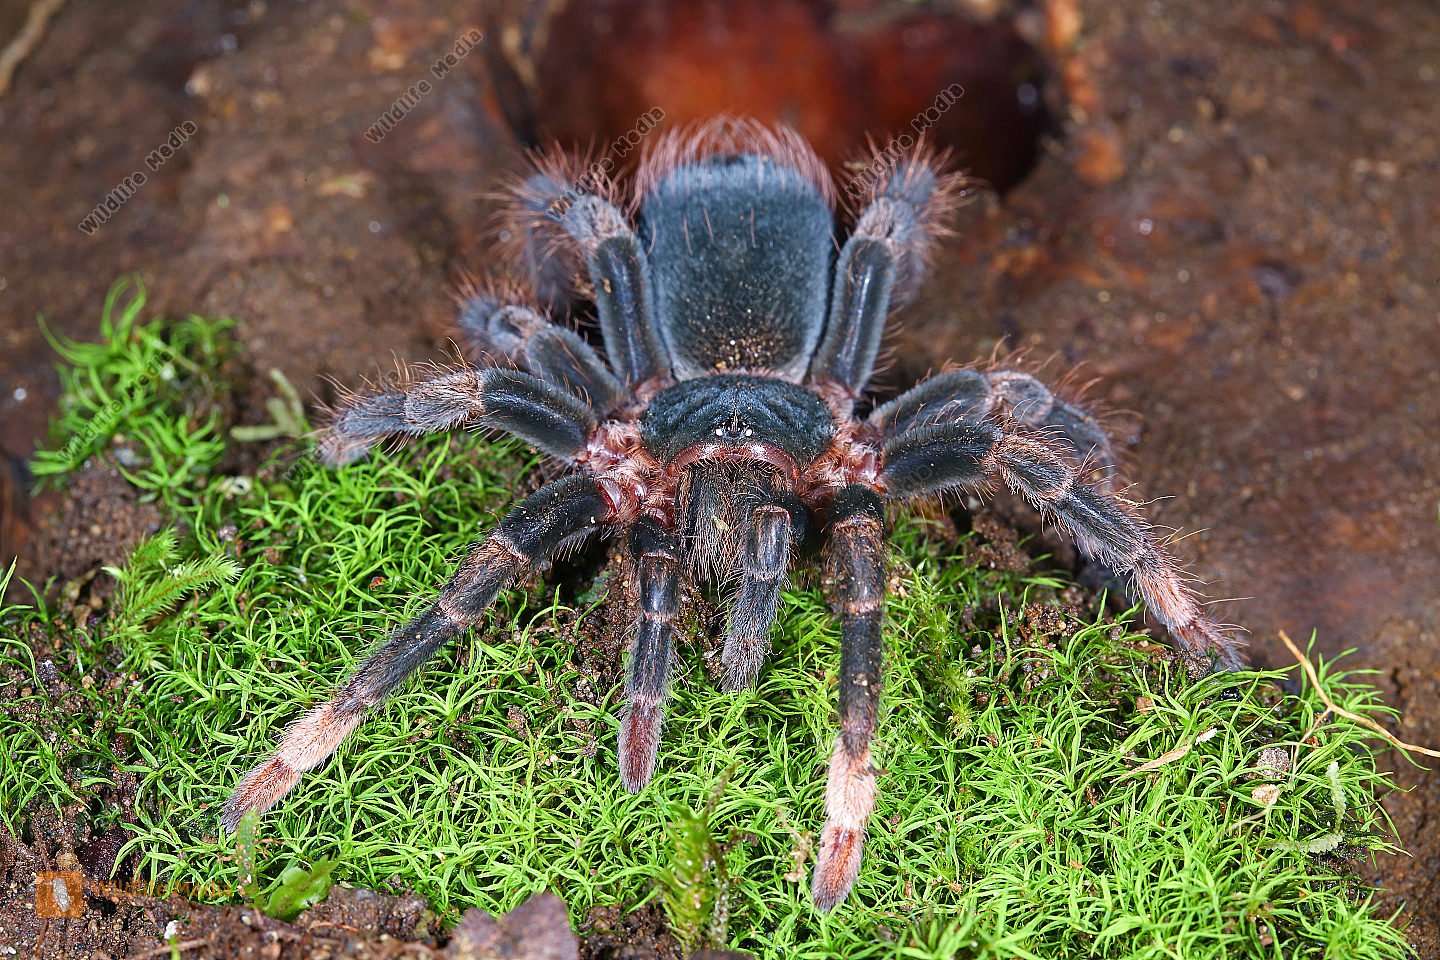 Rotbeinvogelspinne